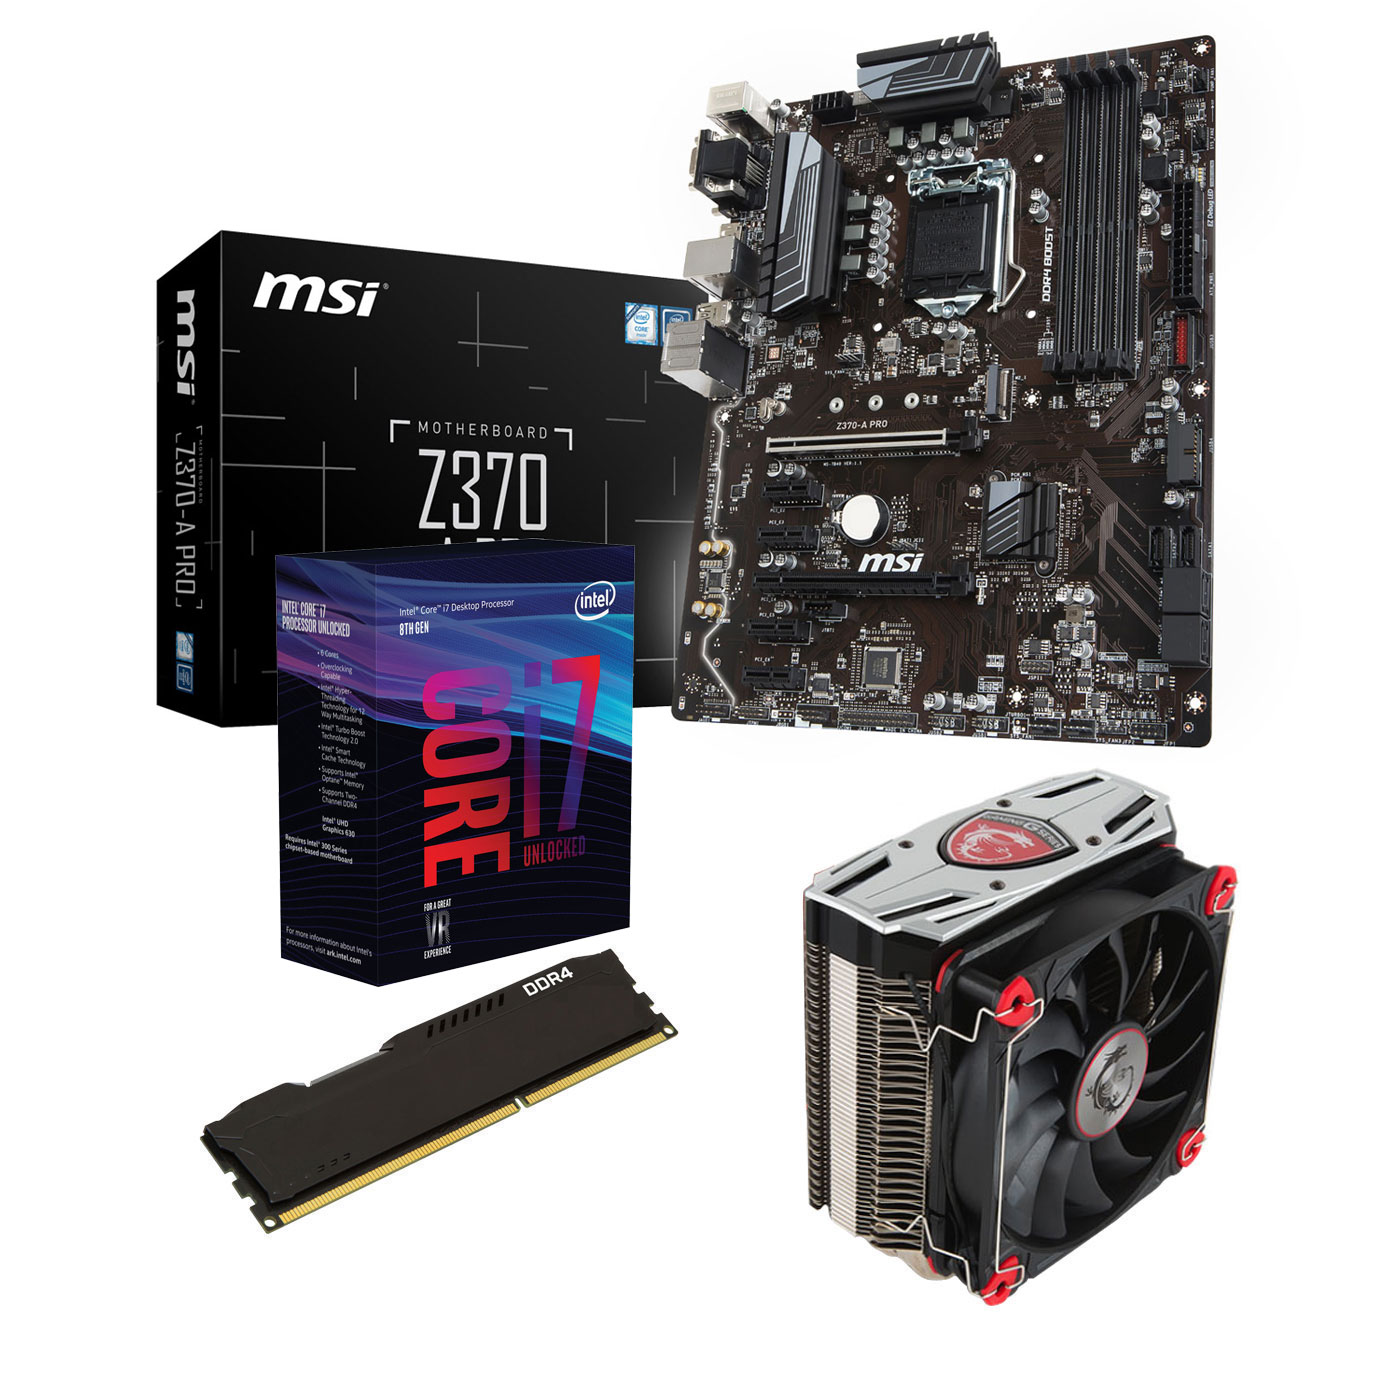 Kit upgrade PC Kit Upgrade PC Core i7K MSI Z370-A PRO 8 Go Carte mère Socket 1151 Intel Z370 Express + CPU Intel Core i7-8700K (3.7 GHz) + RAM 8 Go DDR4